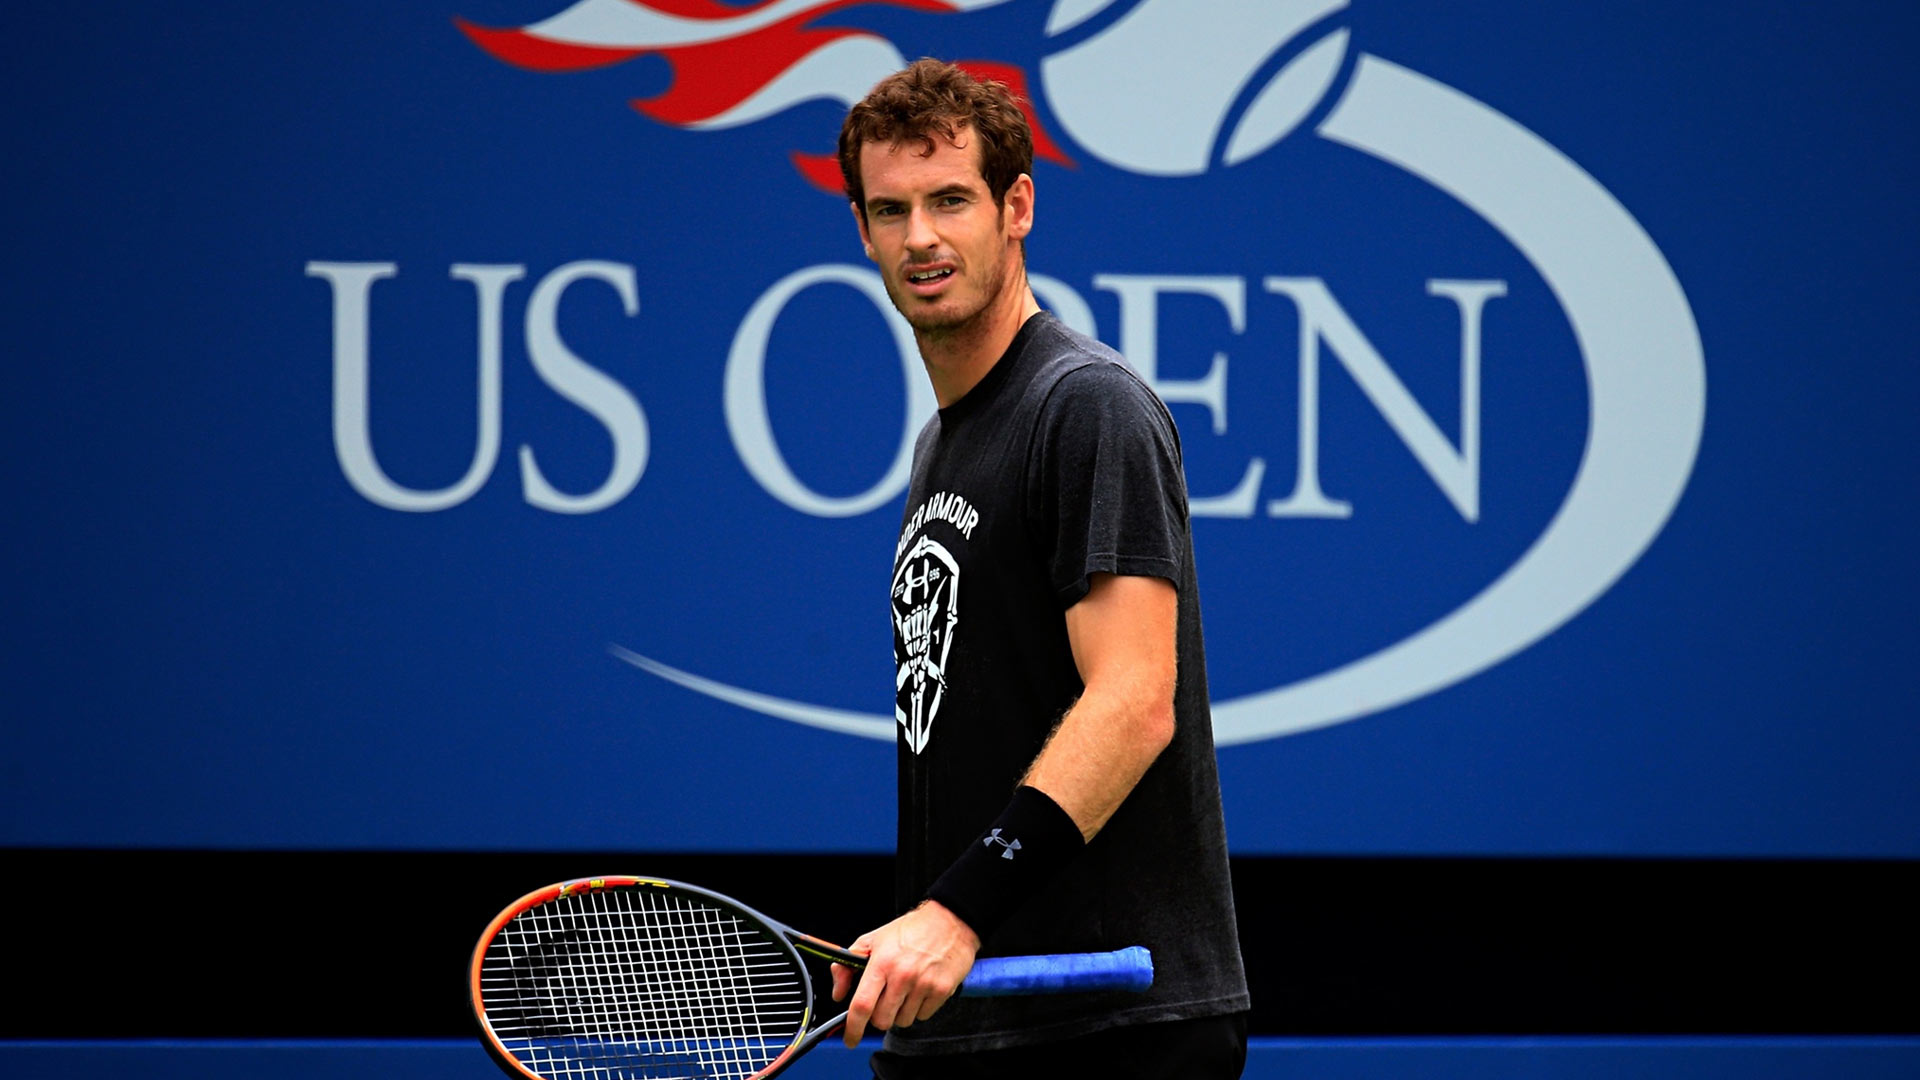 Top 10 Tennis Players in 2017 1